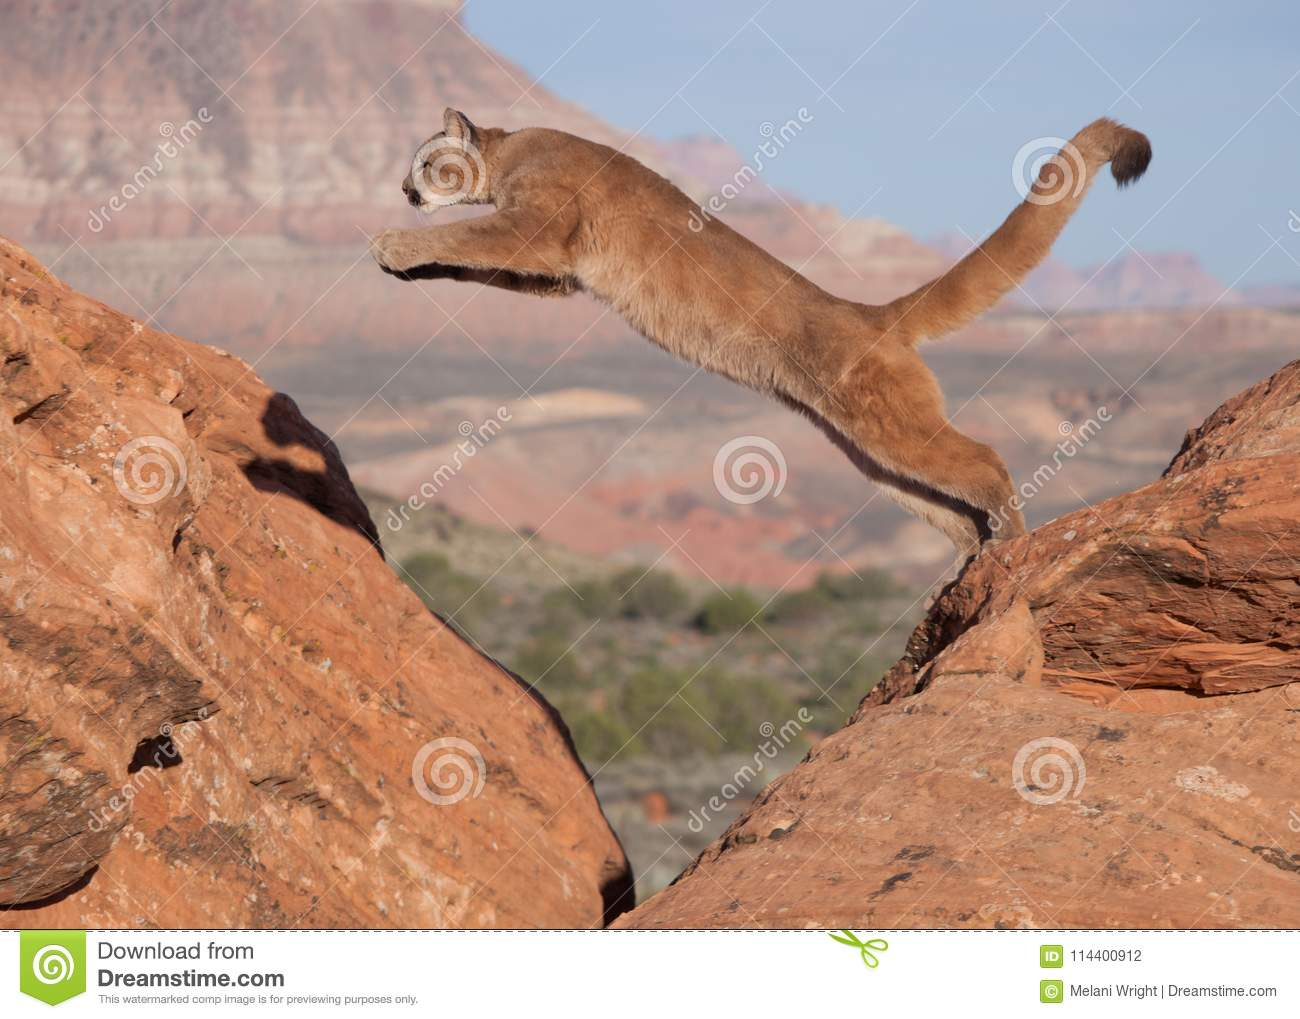 A young cougar jumping from one red sandstone boulder to another with a southwestern desert and mesa in the background